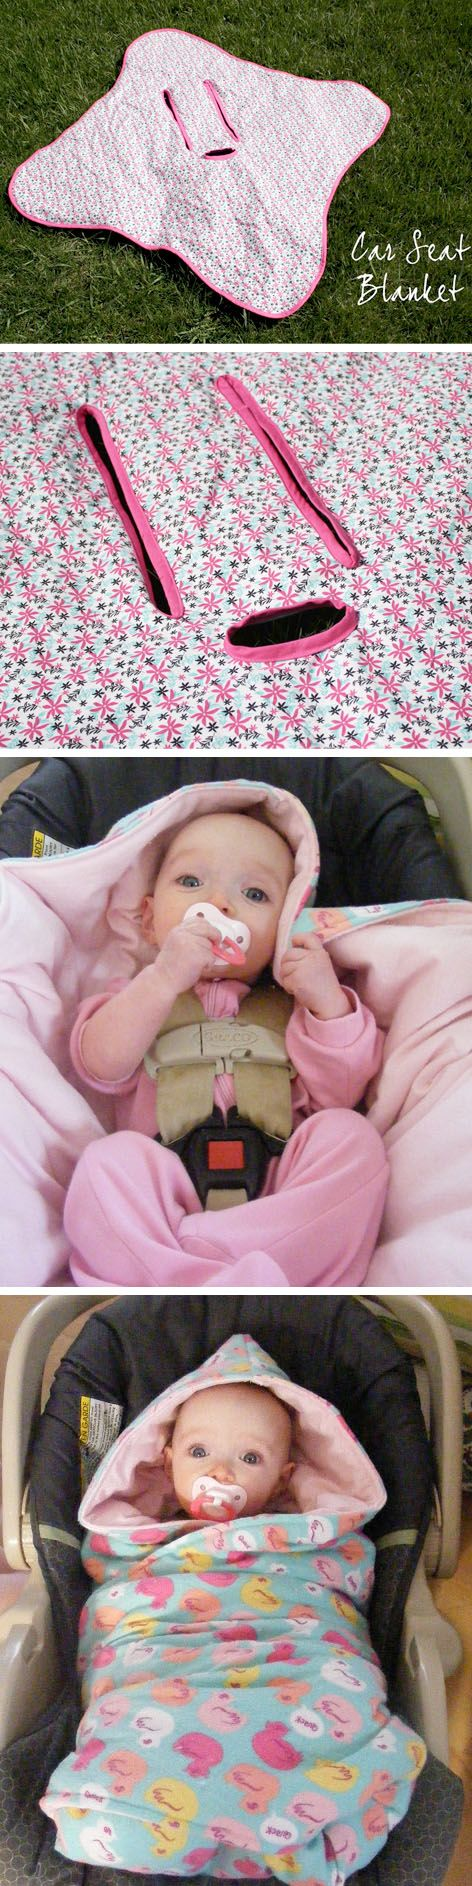 DIY: Baby car seat blanket. Tutorials: http://www.imperfecthomemaking.com/2012/01/tutorial-hooded-car-seat-blankies.html and HERE http://projectsbyjess.blogspot.com/2011/03/car-seat-blanket.html